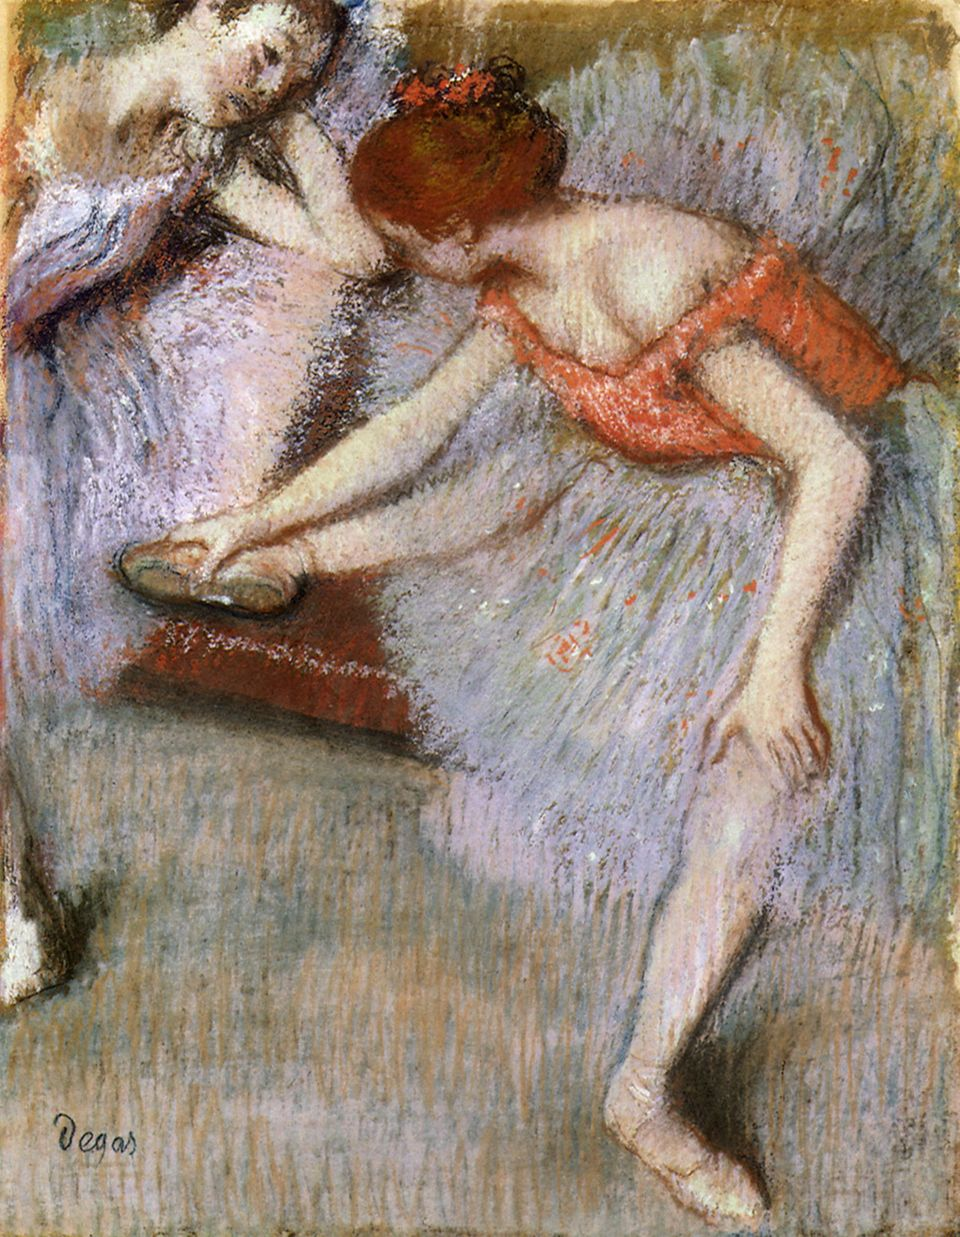 As an adult, Degas fraternized with few women aside from his housekeepers. His friends believed he feared women...